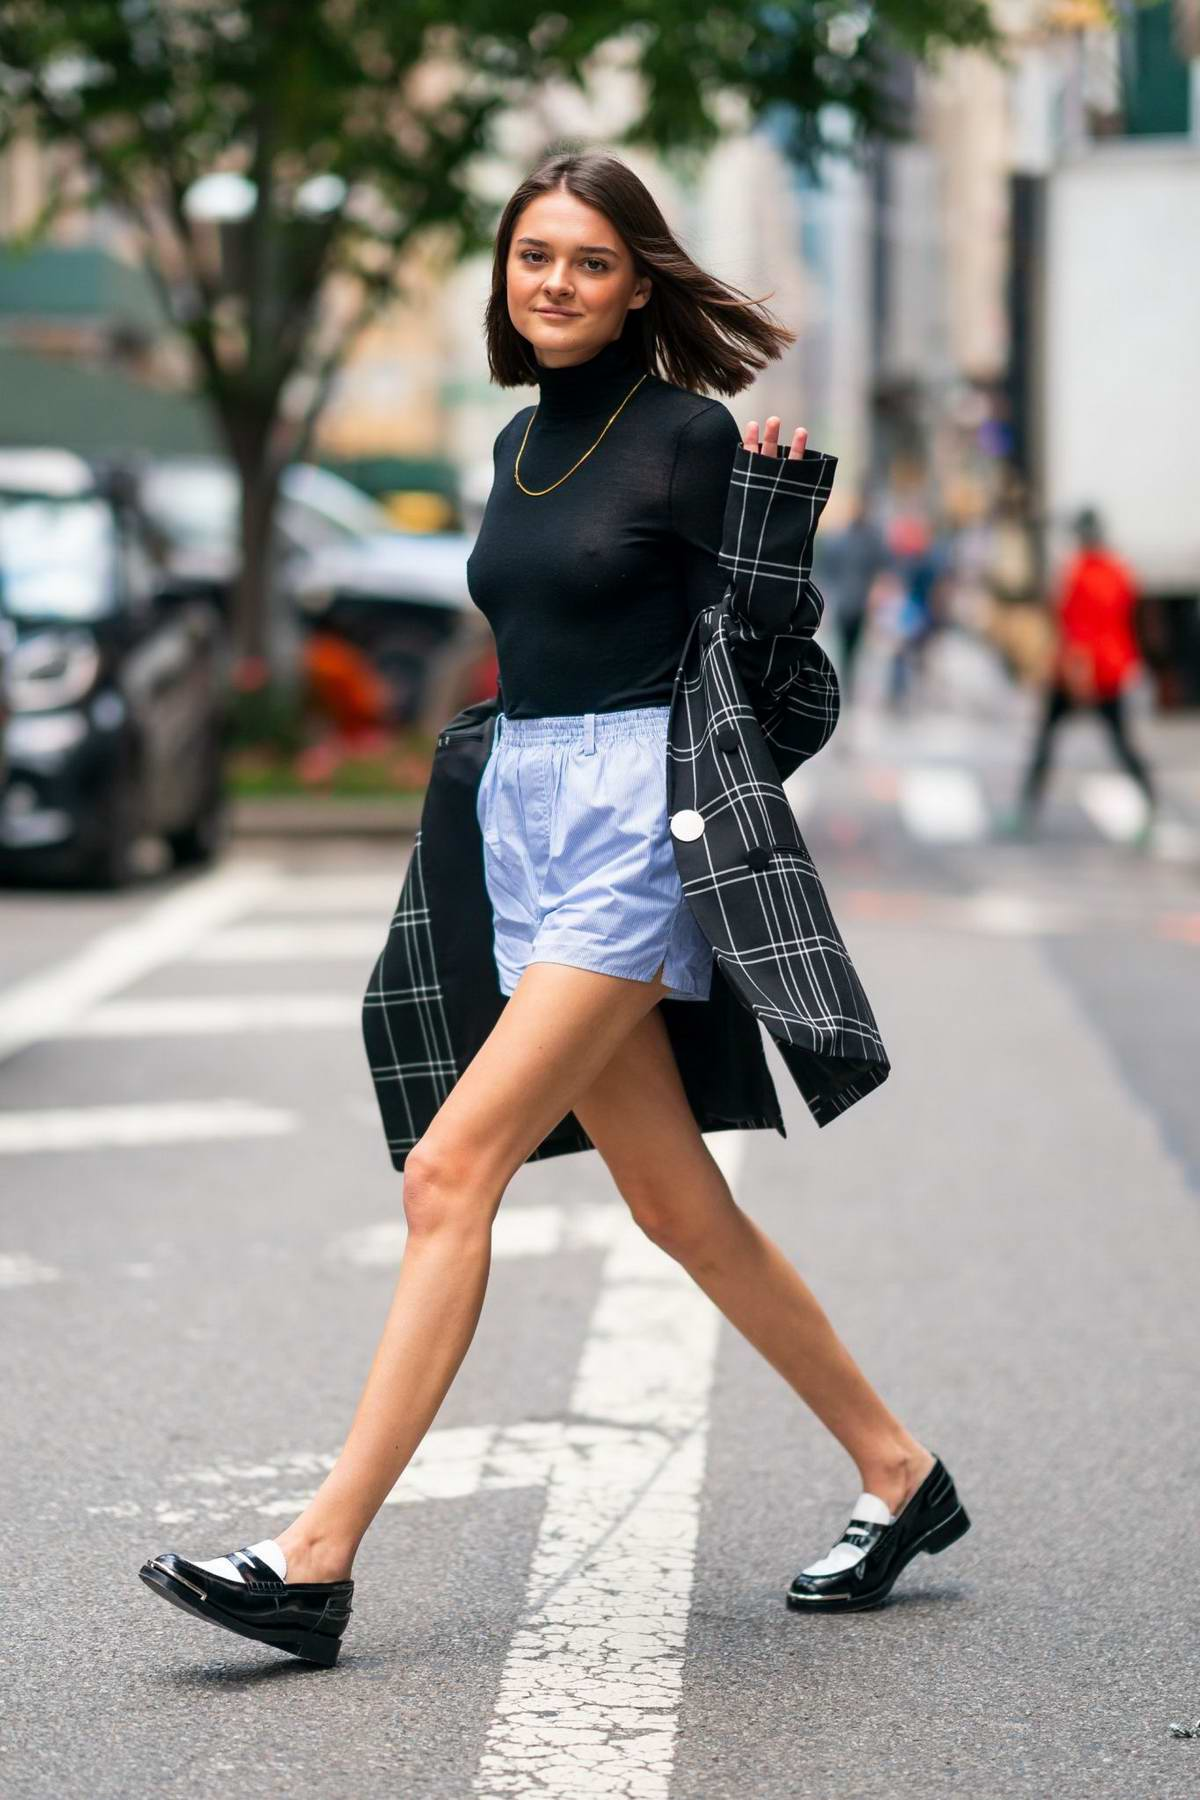 Charlotte Lawrence looks stylish in a plaid blazer, black top and blue shorts as she steps out in New York City